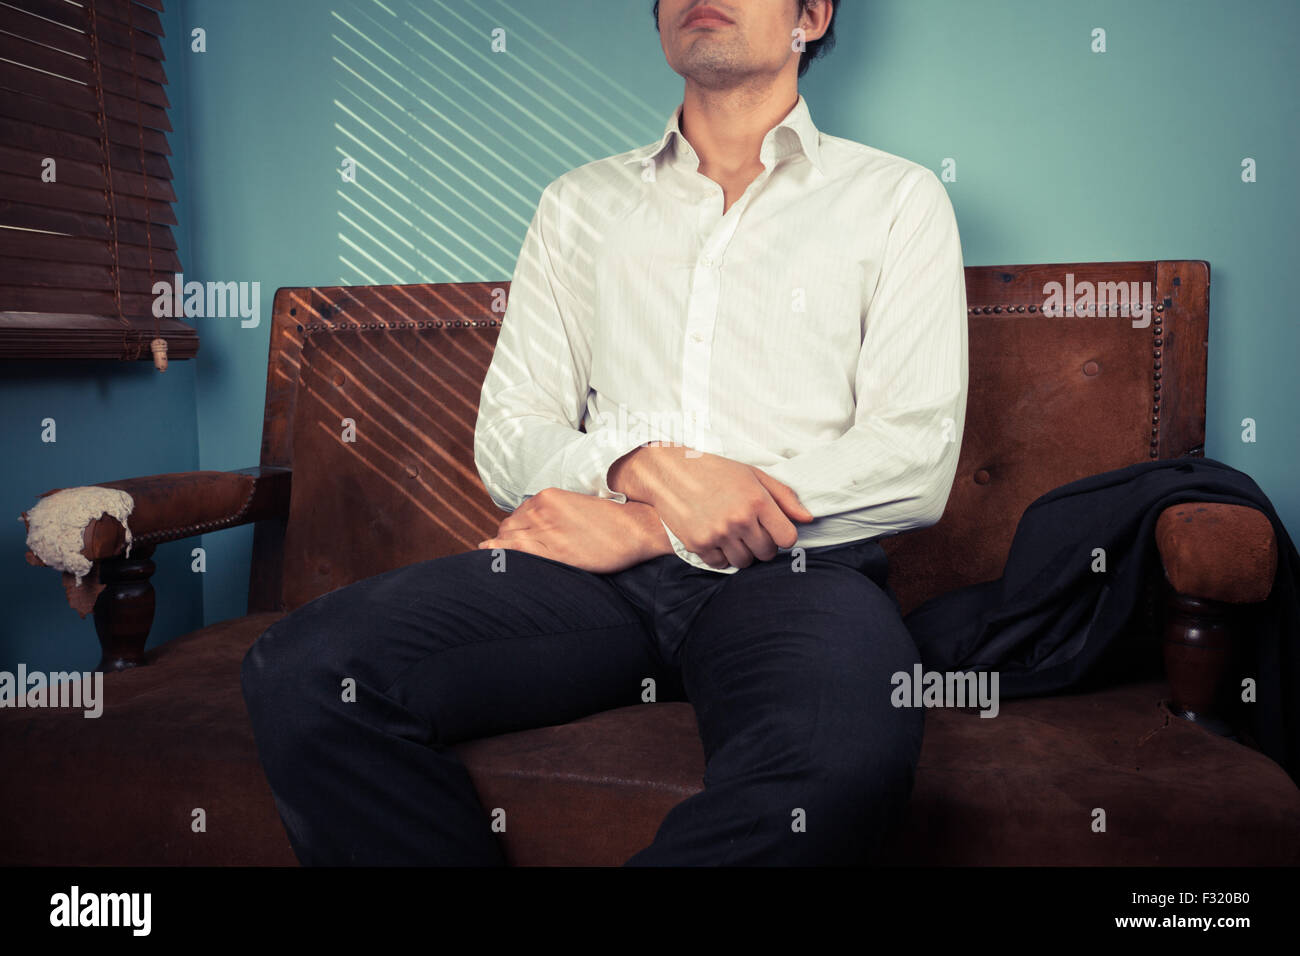 Young man is relaxing on an old sofa by the window on a sunny day - Stock Image